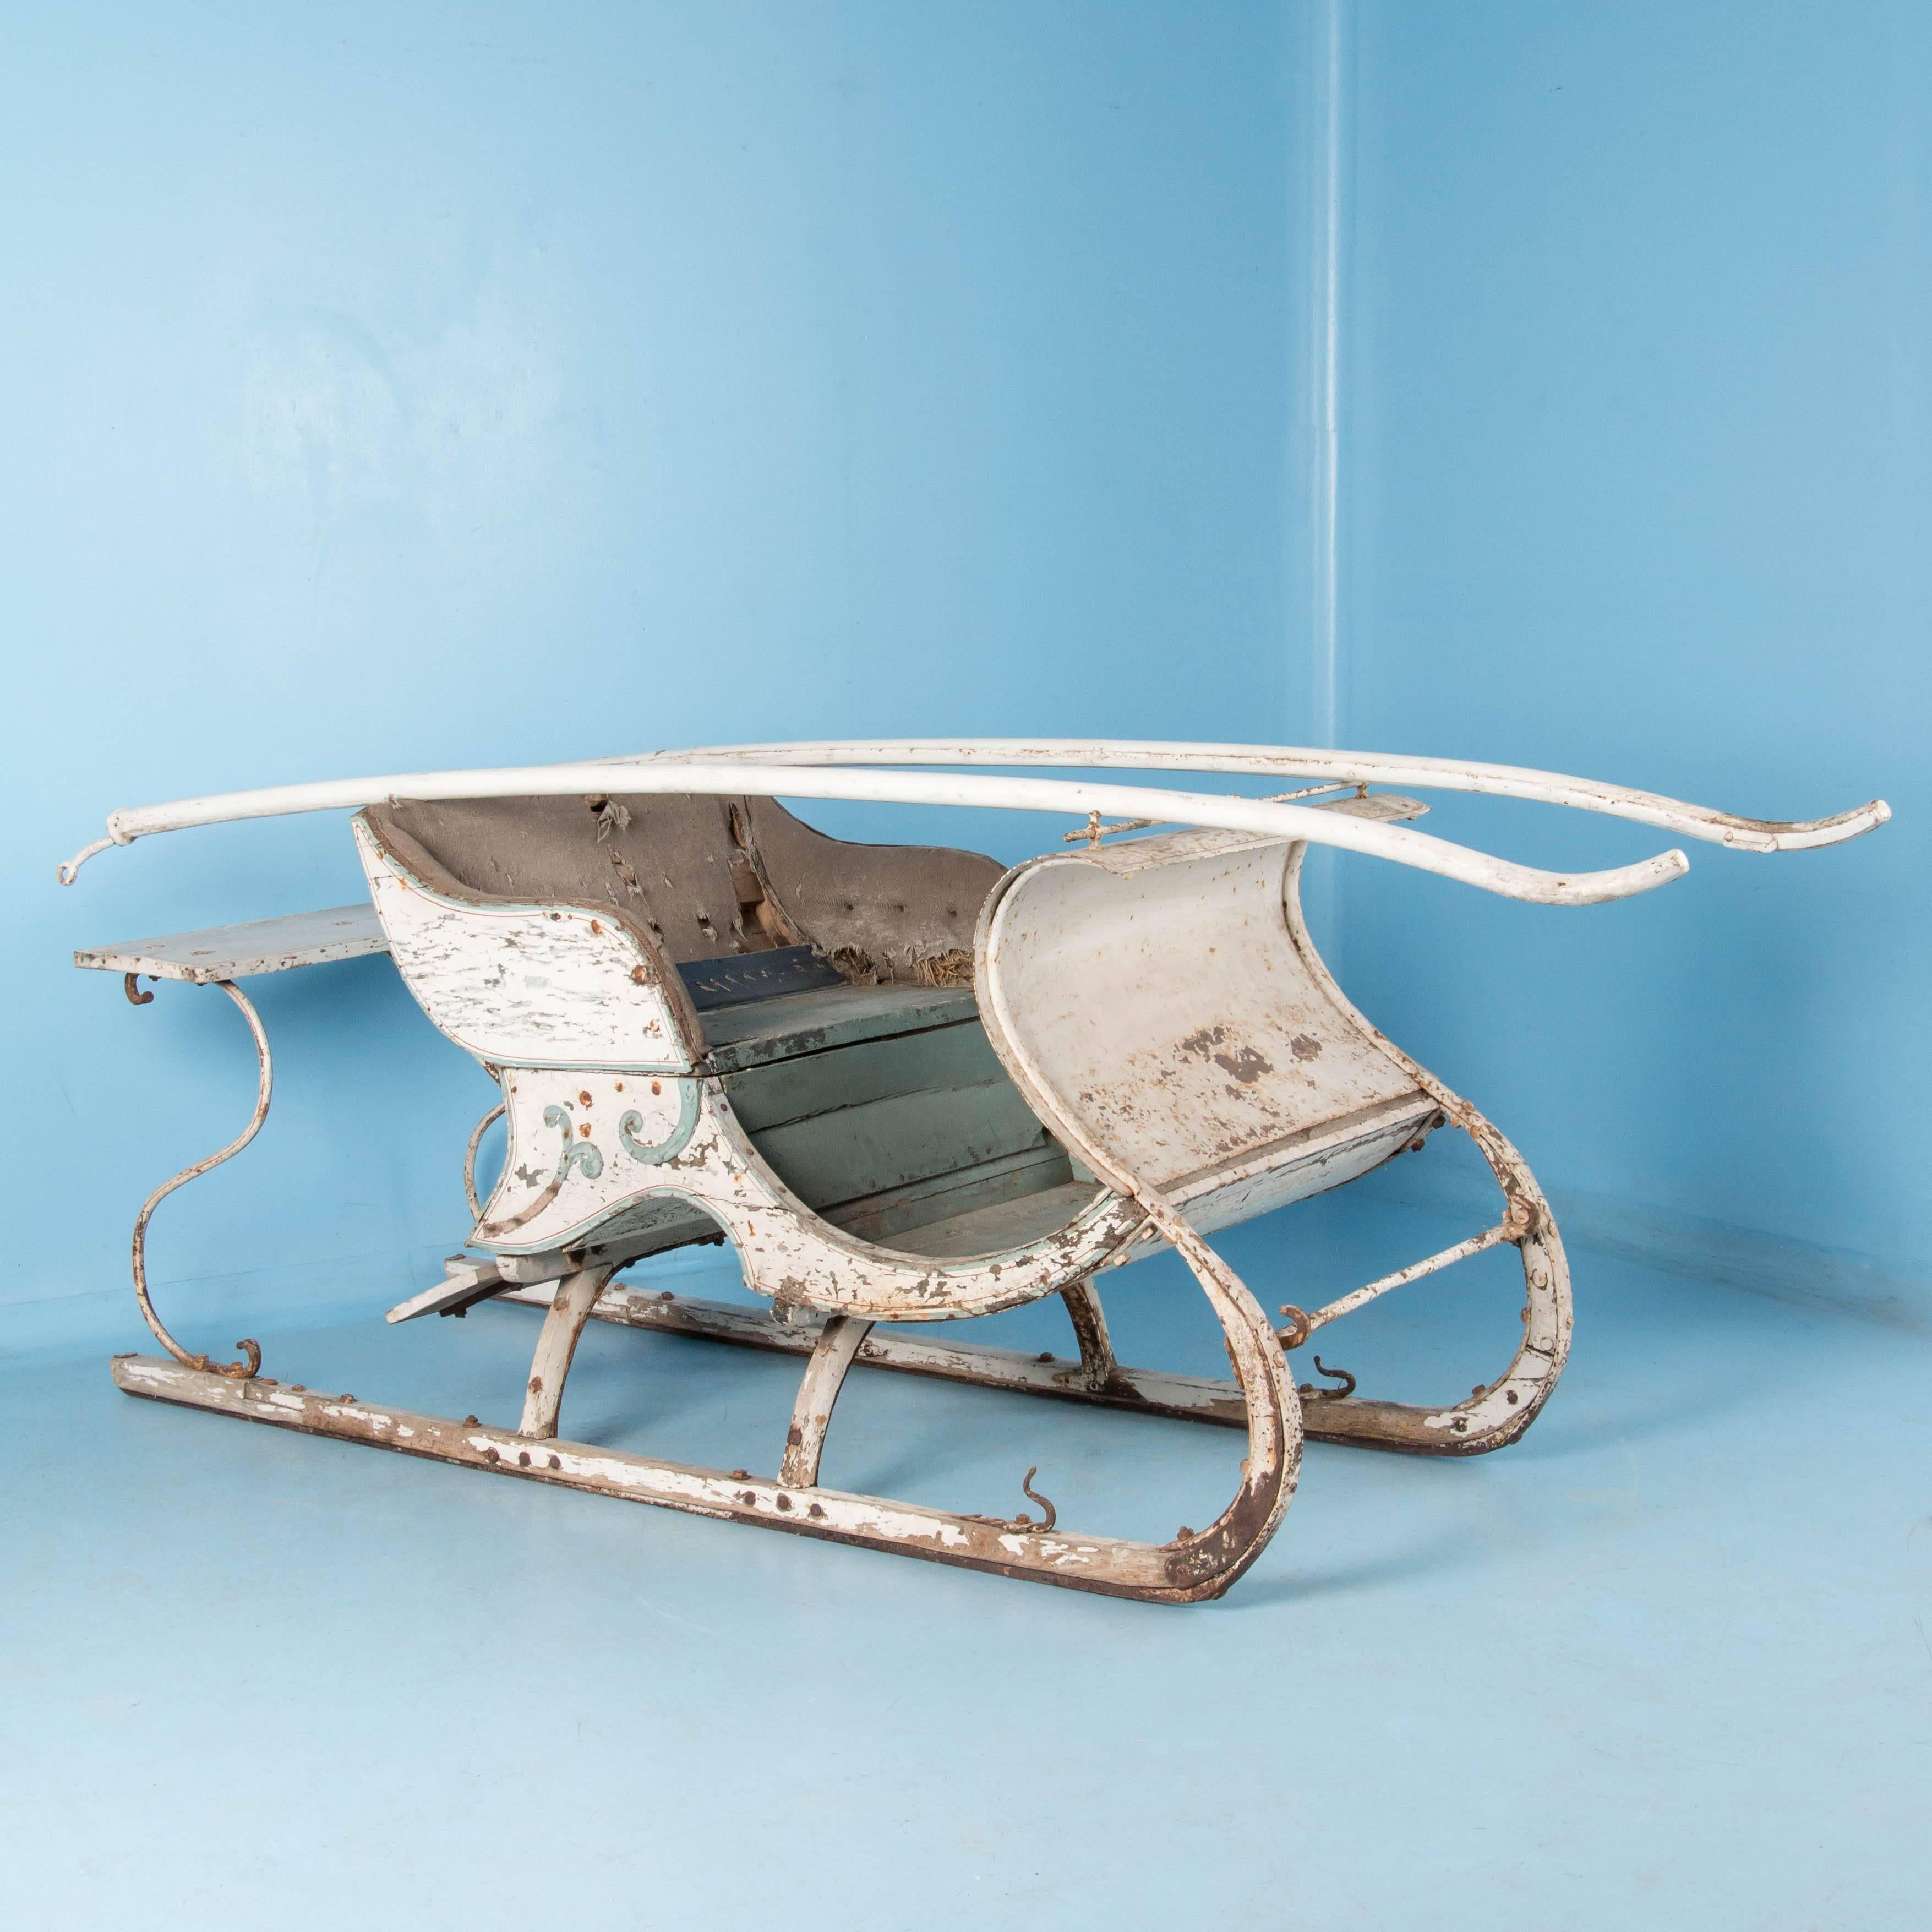 19th Century Swedish Horse Drawn Sleigh